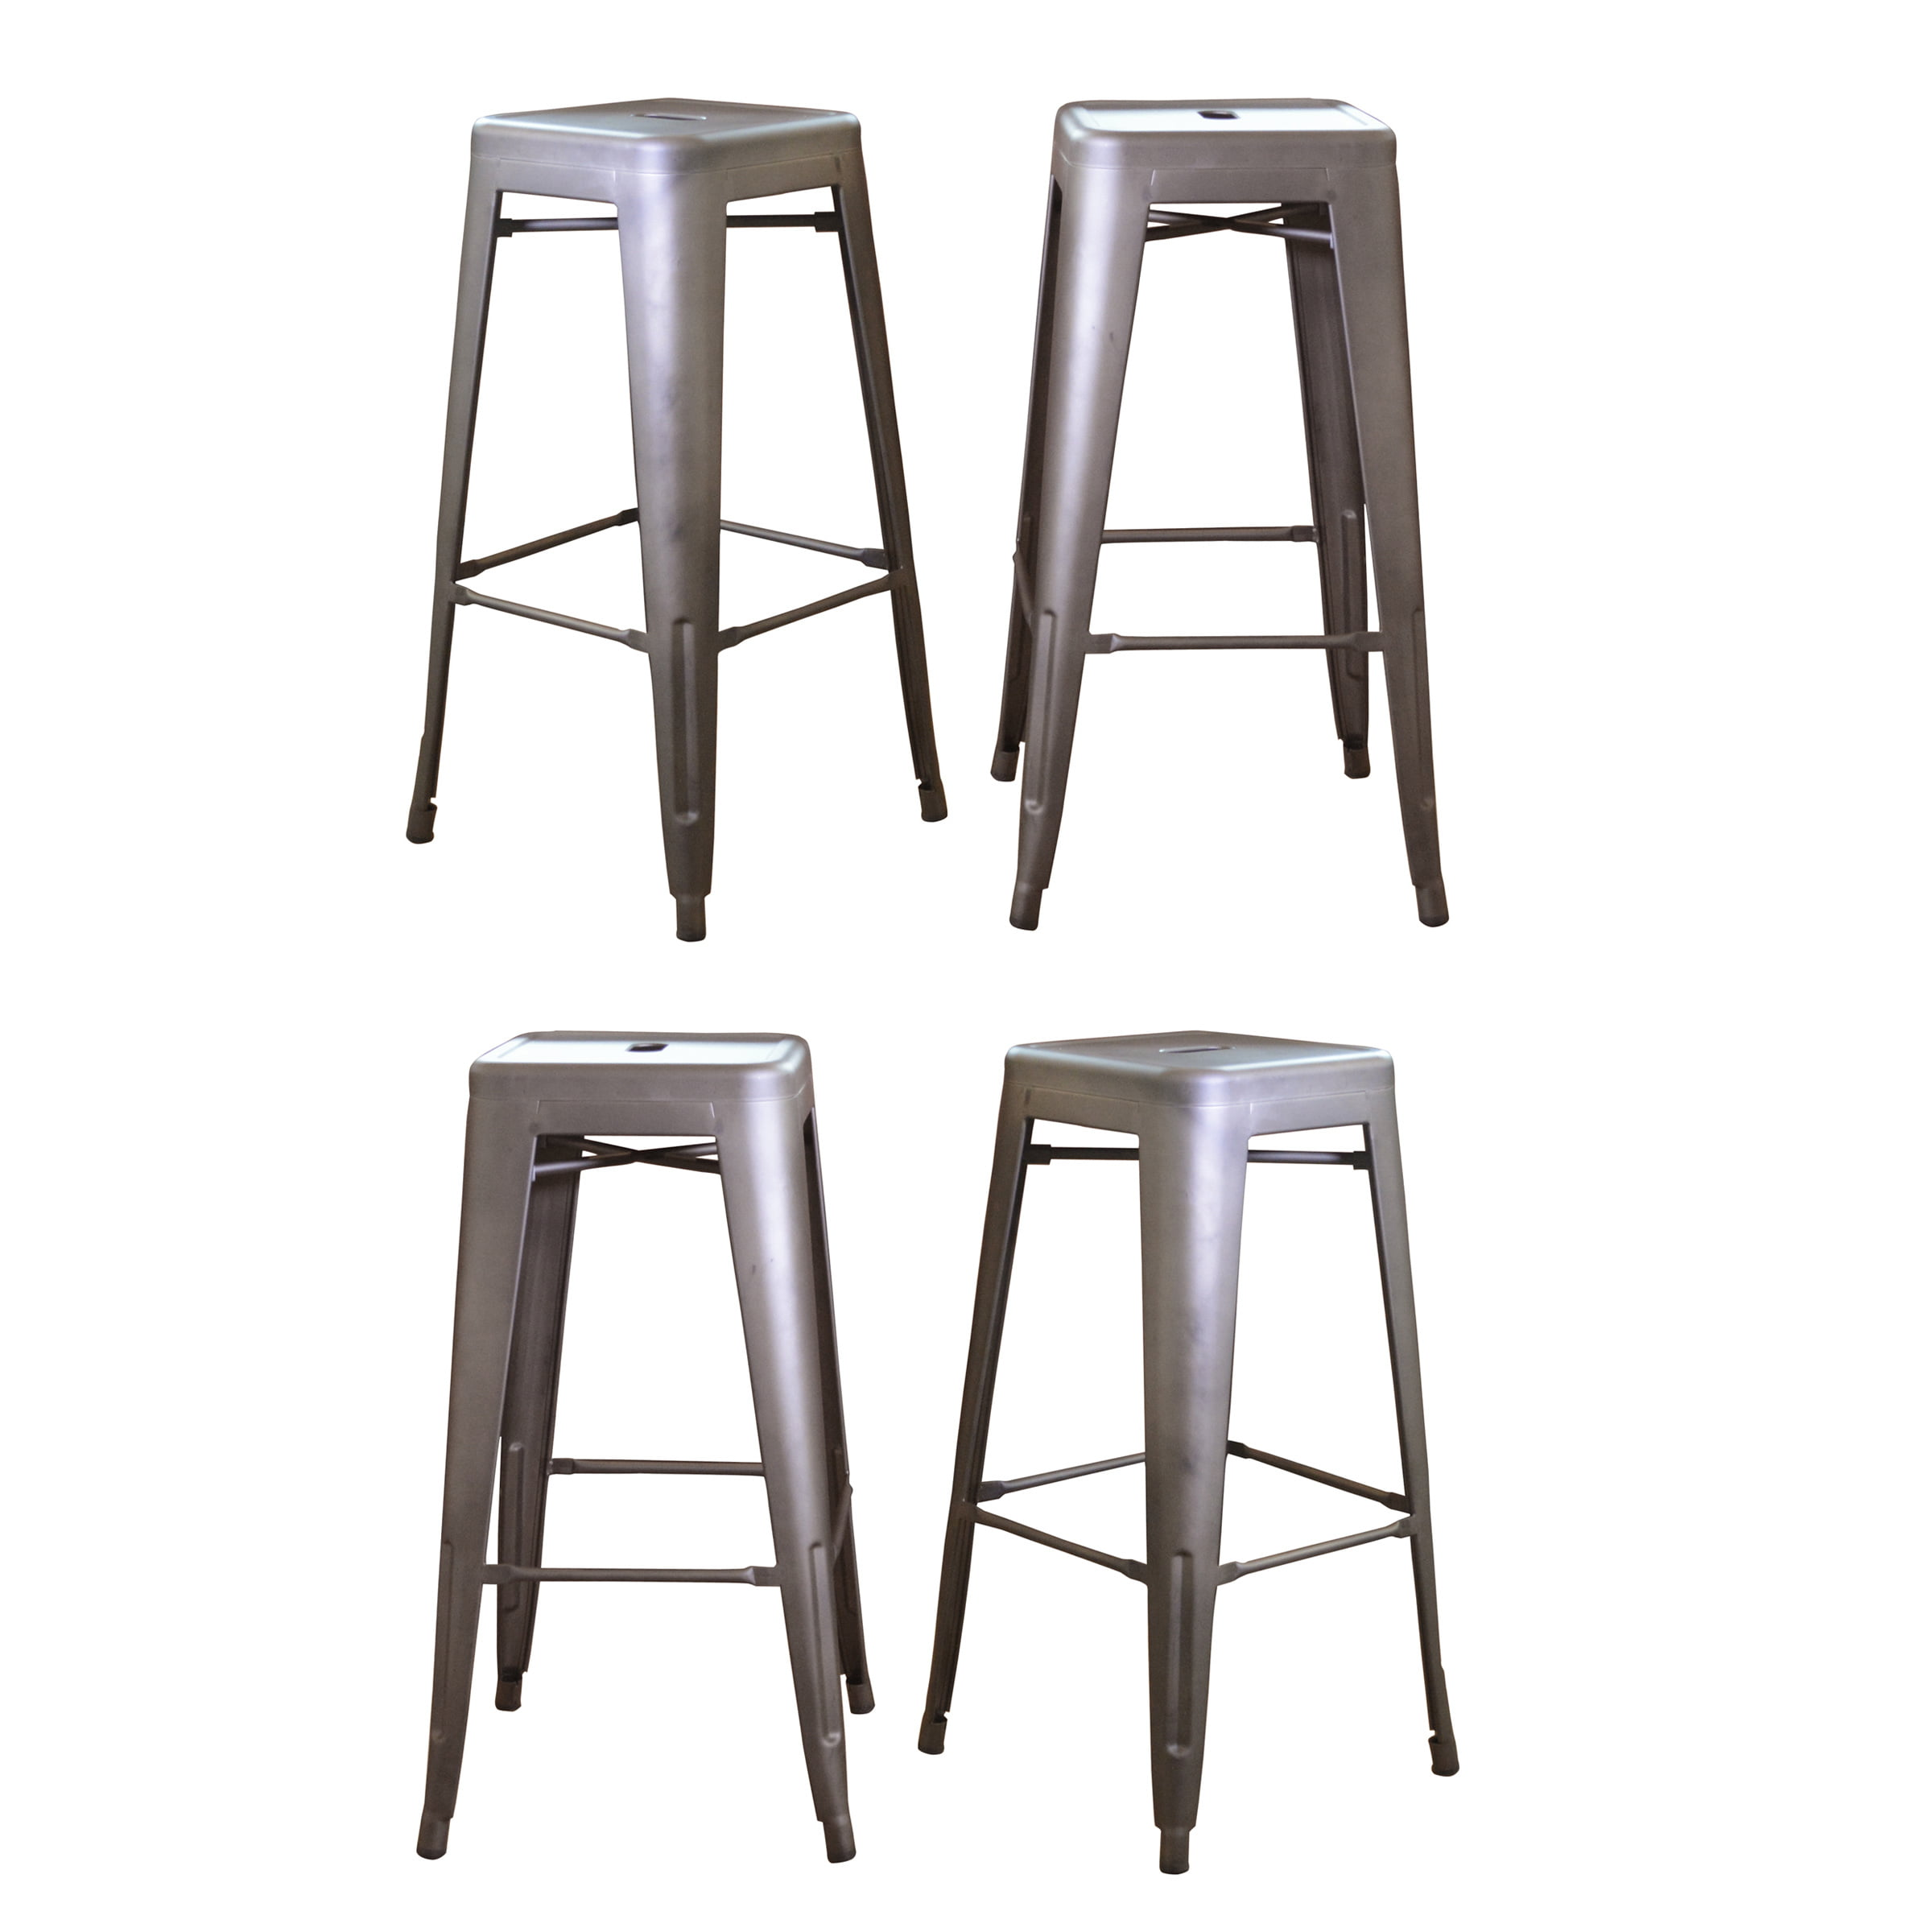 Outstanding Amerihome Loft Black 18 Metal Bar Stool Blue Set Of 4 Squirreltailoven Fun Painted Chair Ideas Images Squirreltailovenorg